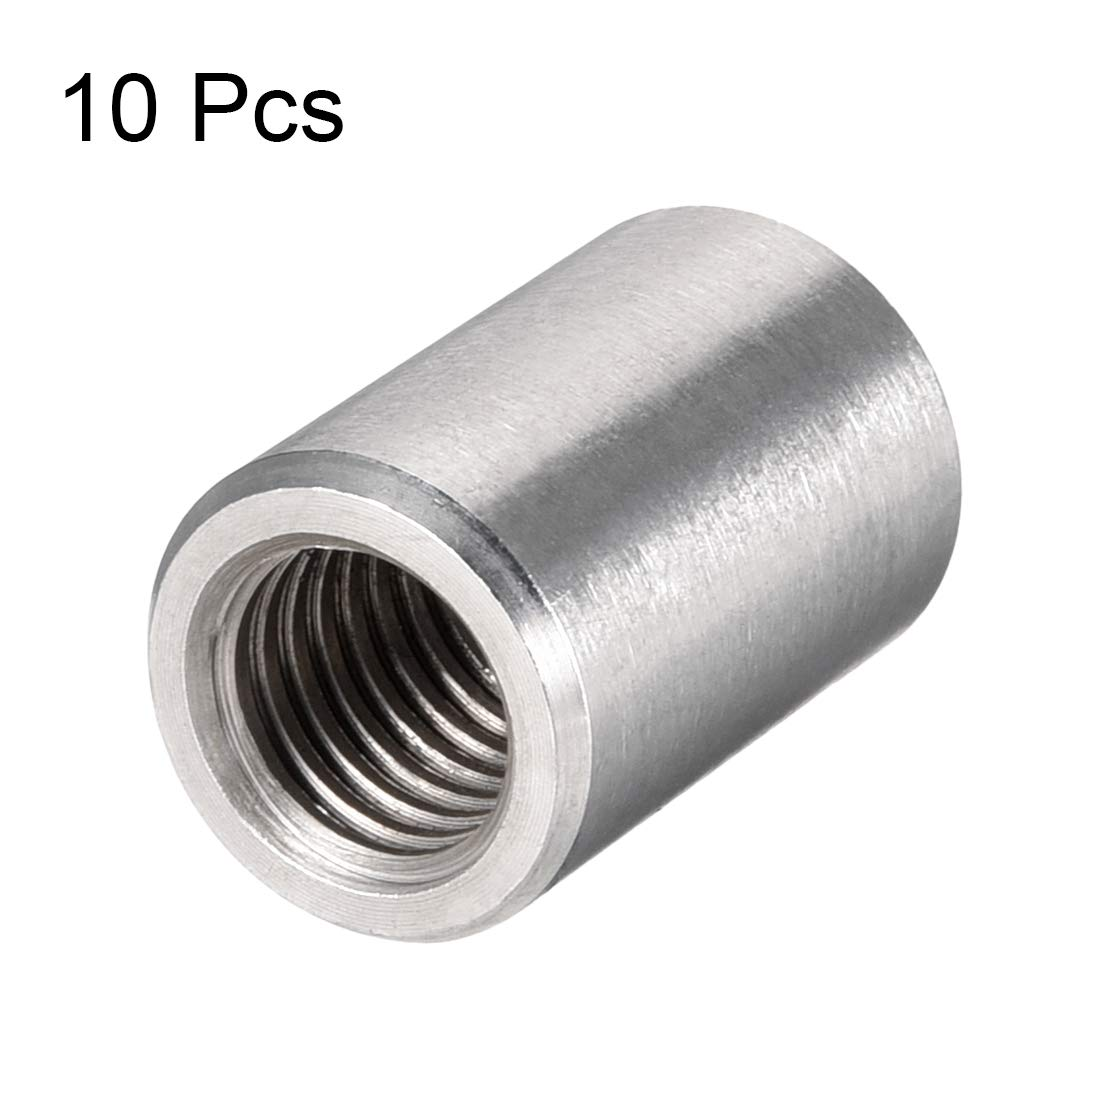 Uxcell a16050300ux0573 M6 Rose Joint Adapter Threaded Rod Bar Stud Round Coupling Connector Nuts 5pcs